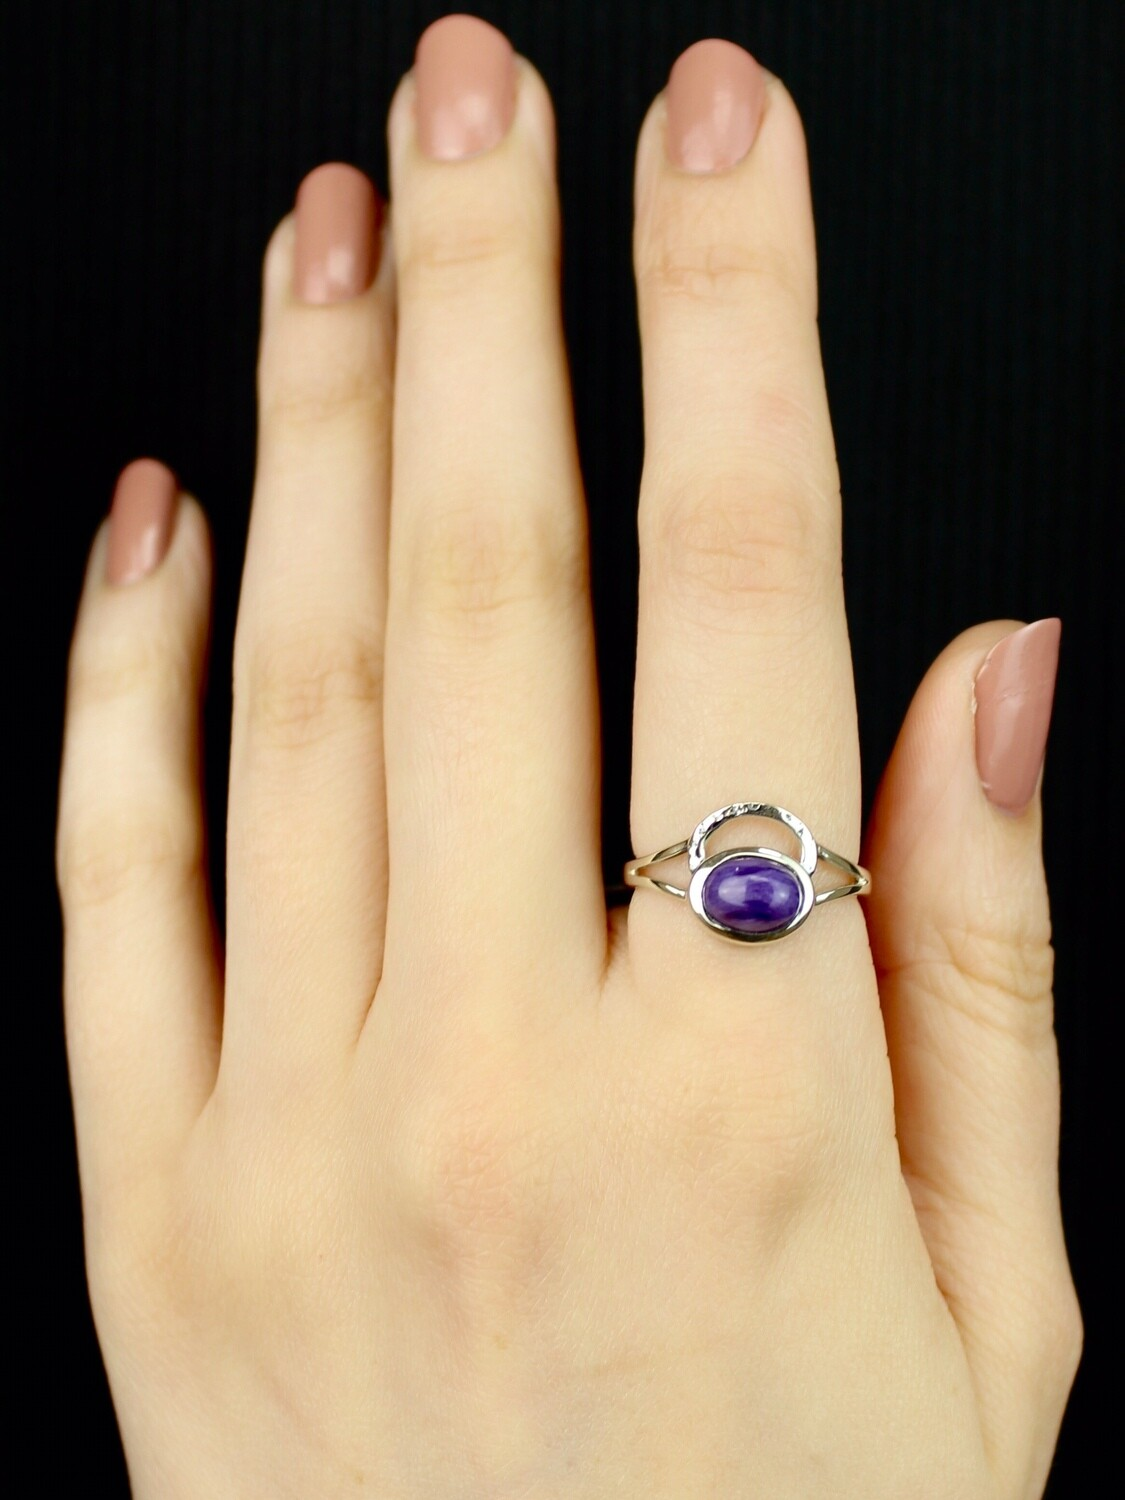 SIZE 8 - Sterling Silver Oval Charoite Ring - RIG8114